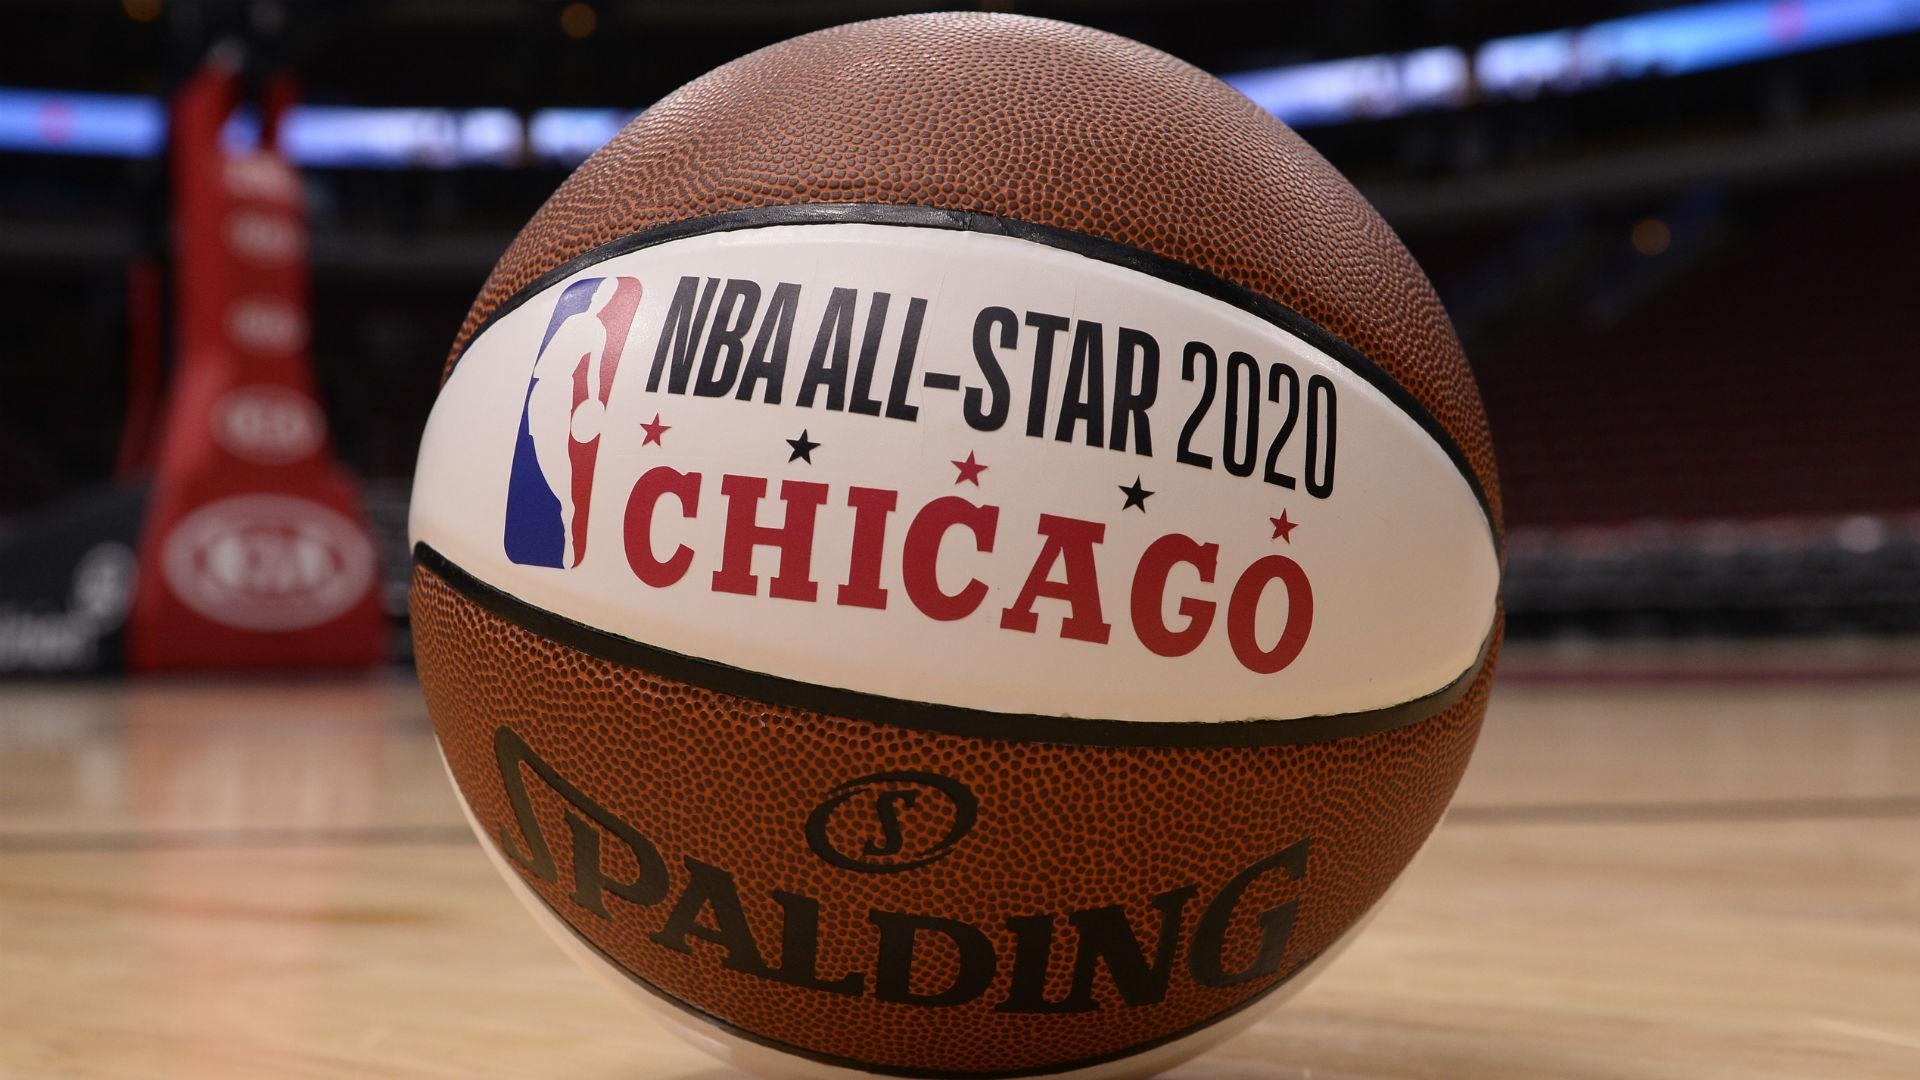 When and where is the 2020 NBA All